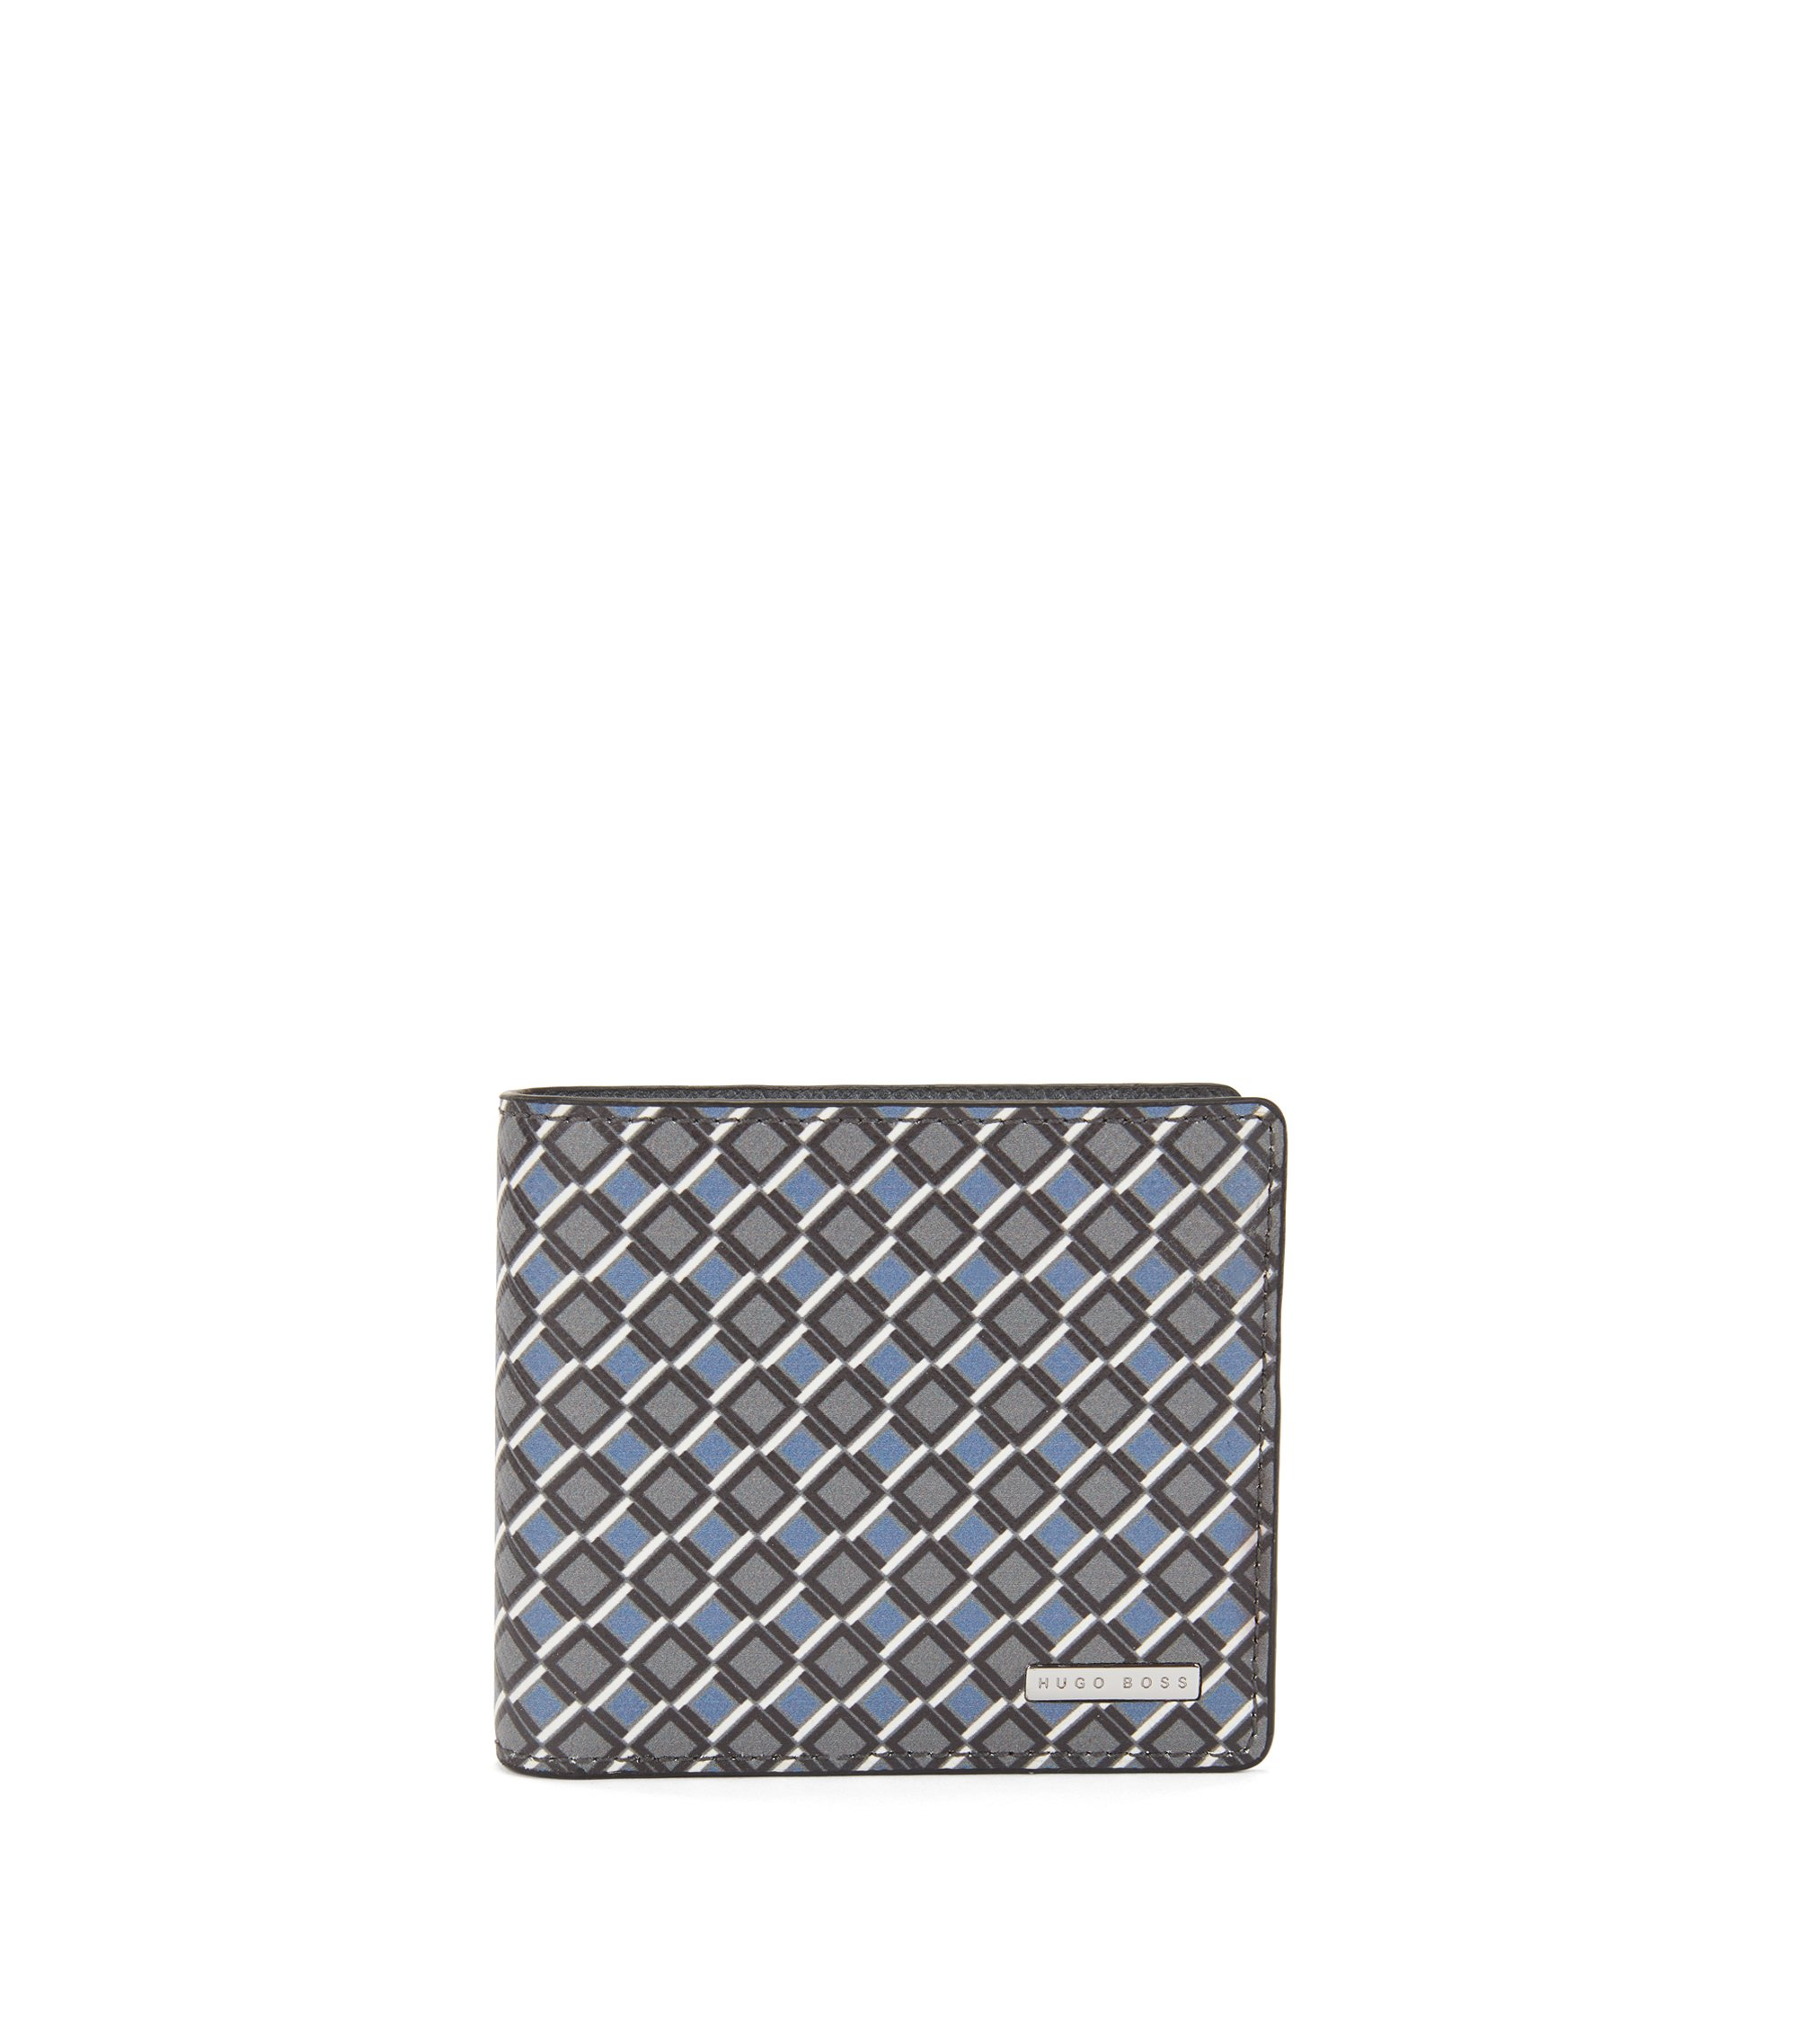 Signature Collection billfold wallet with coin pocket in printed leather, Patterned